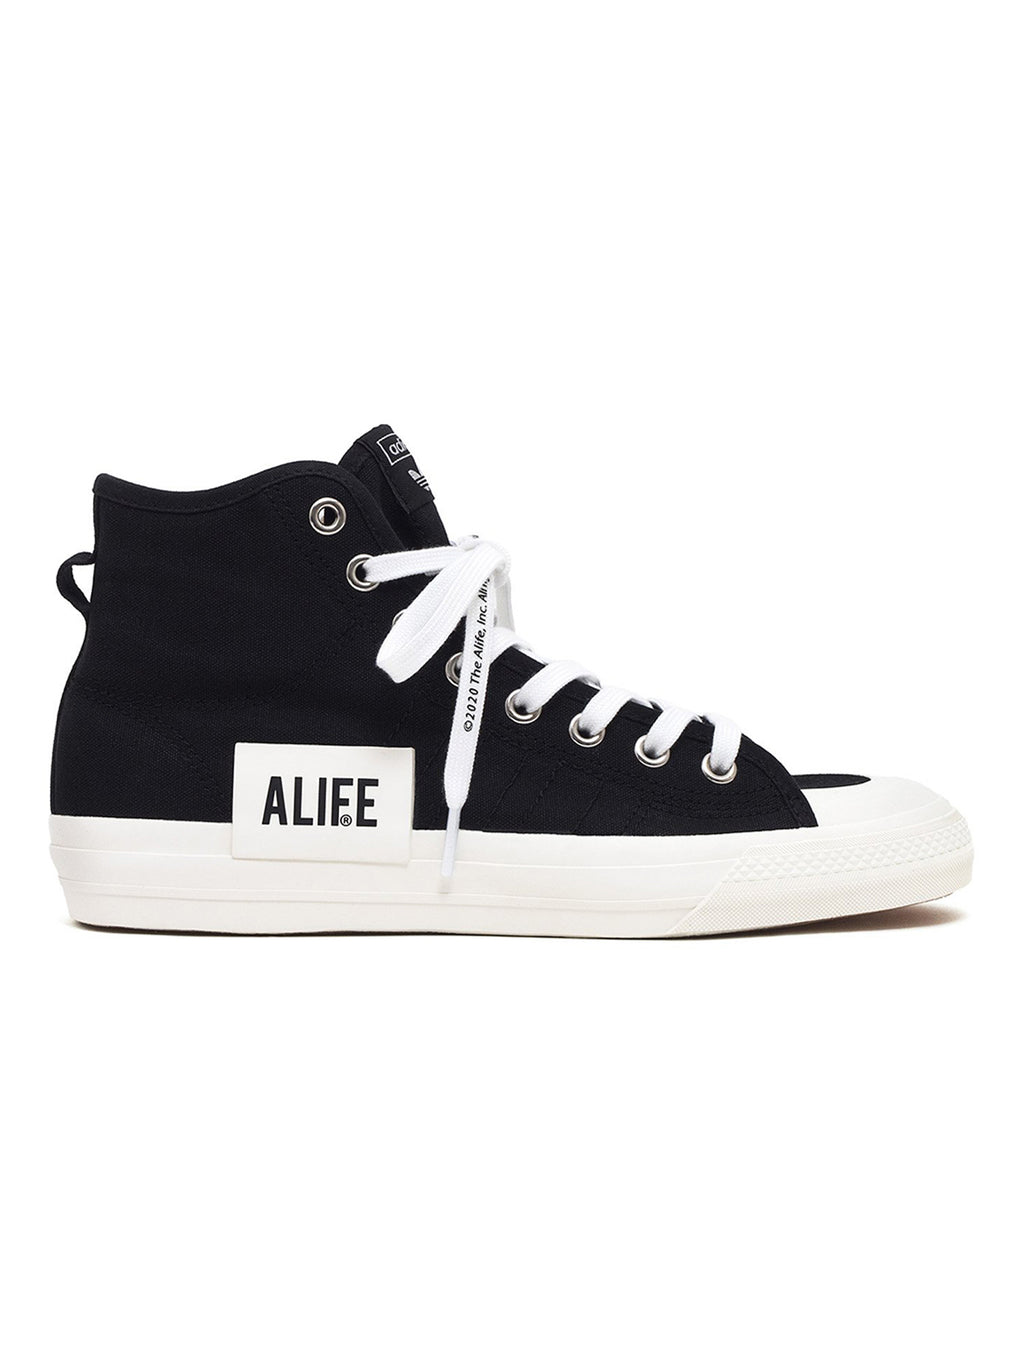 Black Alife Nizza Hi Top Sneakers